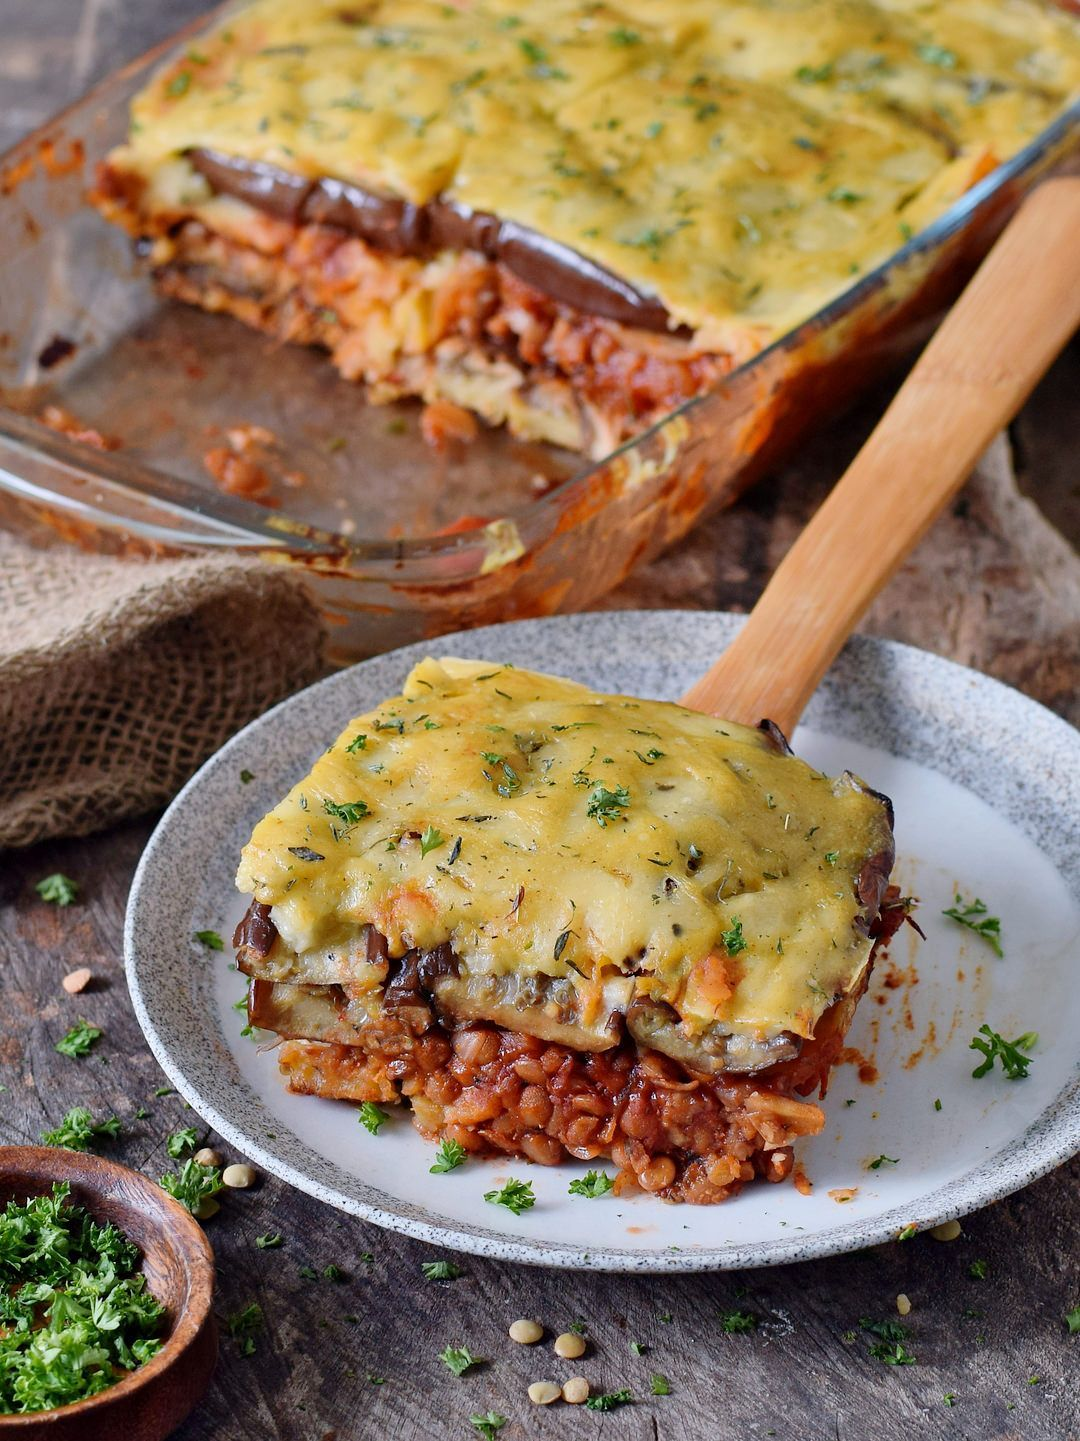 moussaka with lentils and eggplant! This popular Greek dish can be easily made without meat and still tastes amazing. This healthy casserole is a wonderful comfort meal which is flavorful, satisfying, and very enjoyable. The recipe is plant-based, gluten-free, and fairly easy to make! |